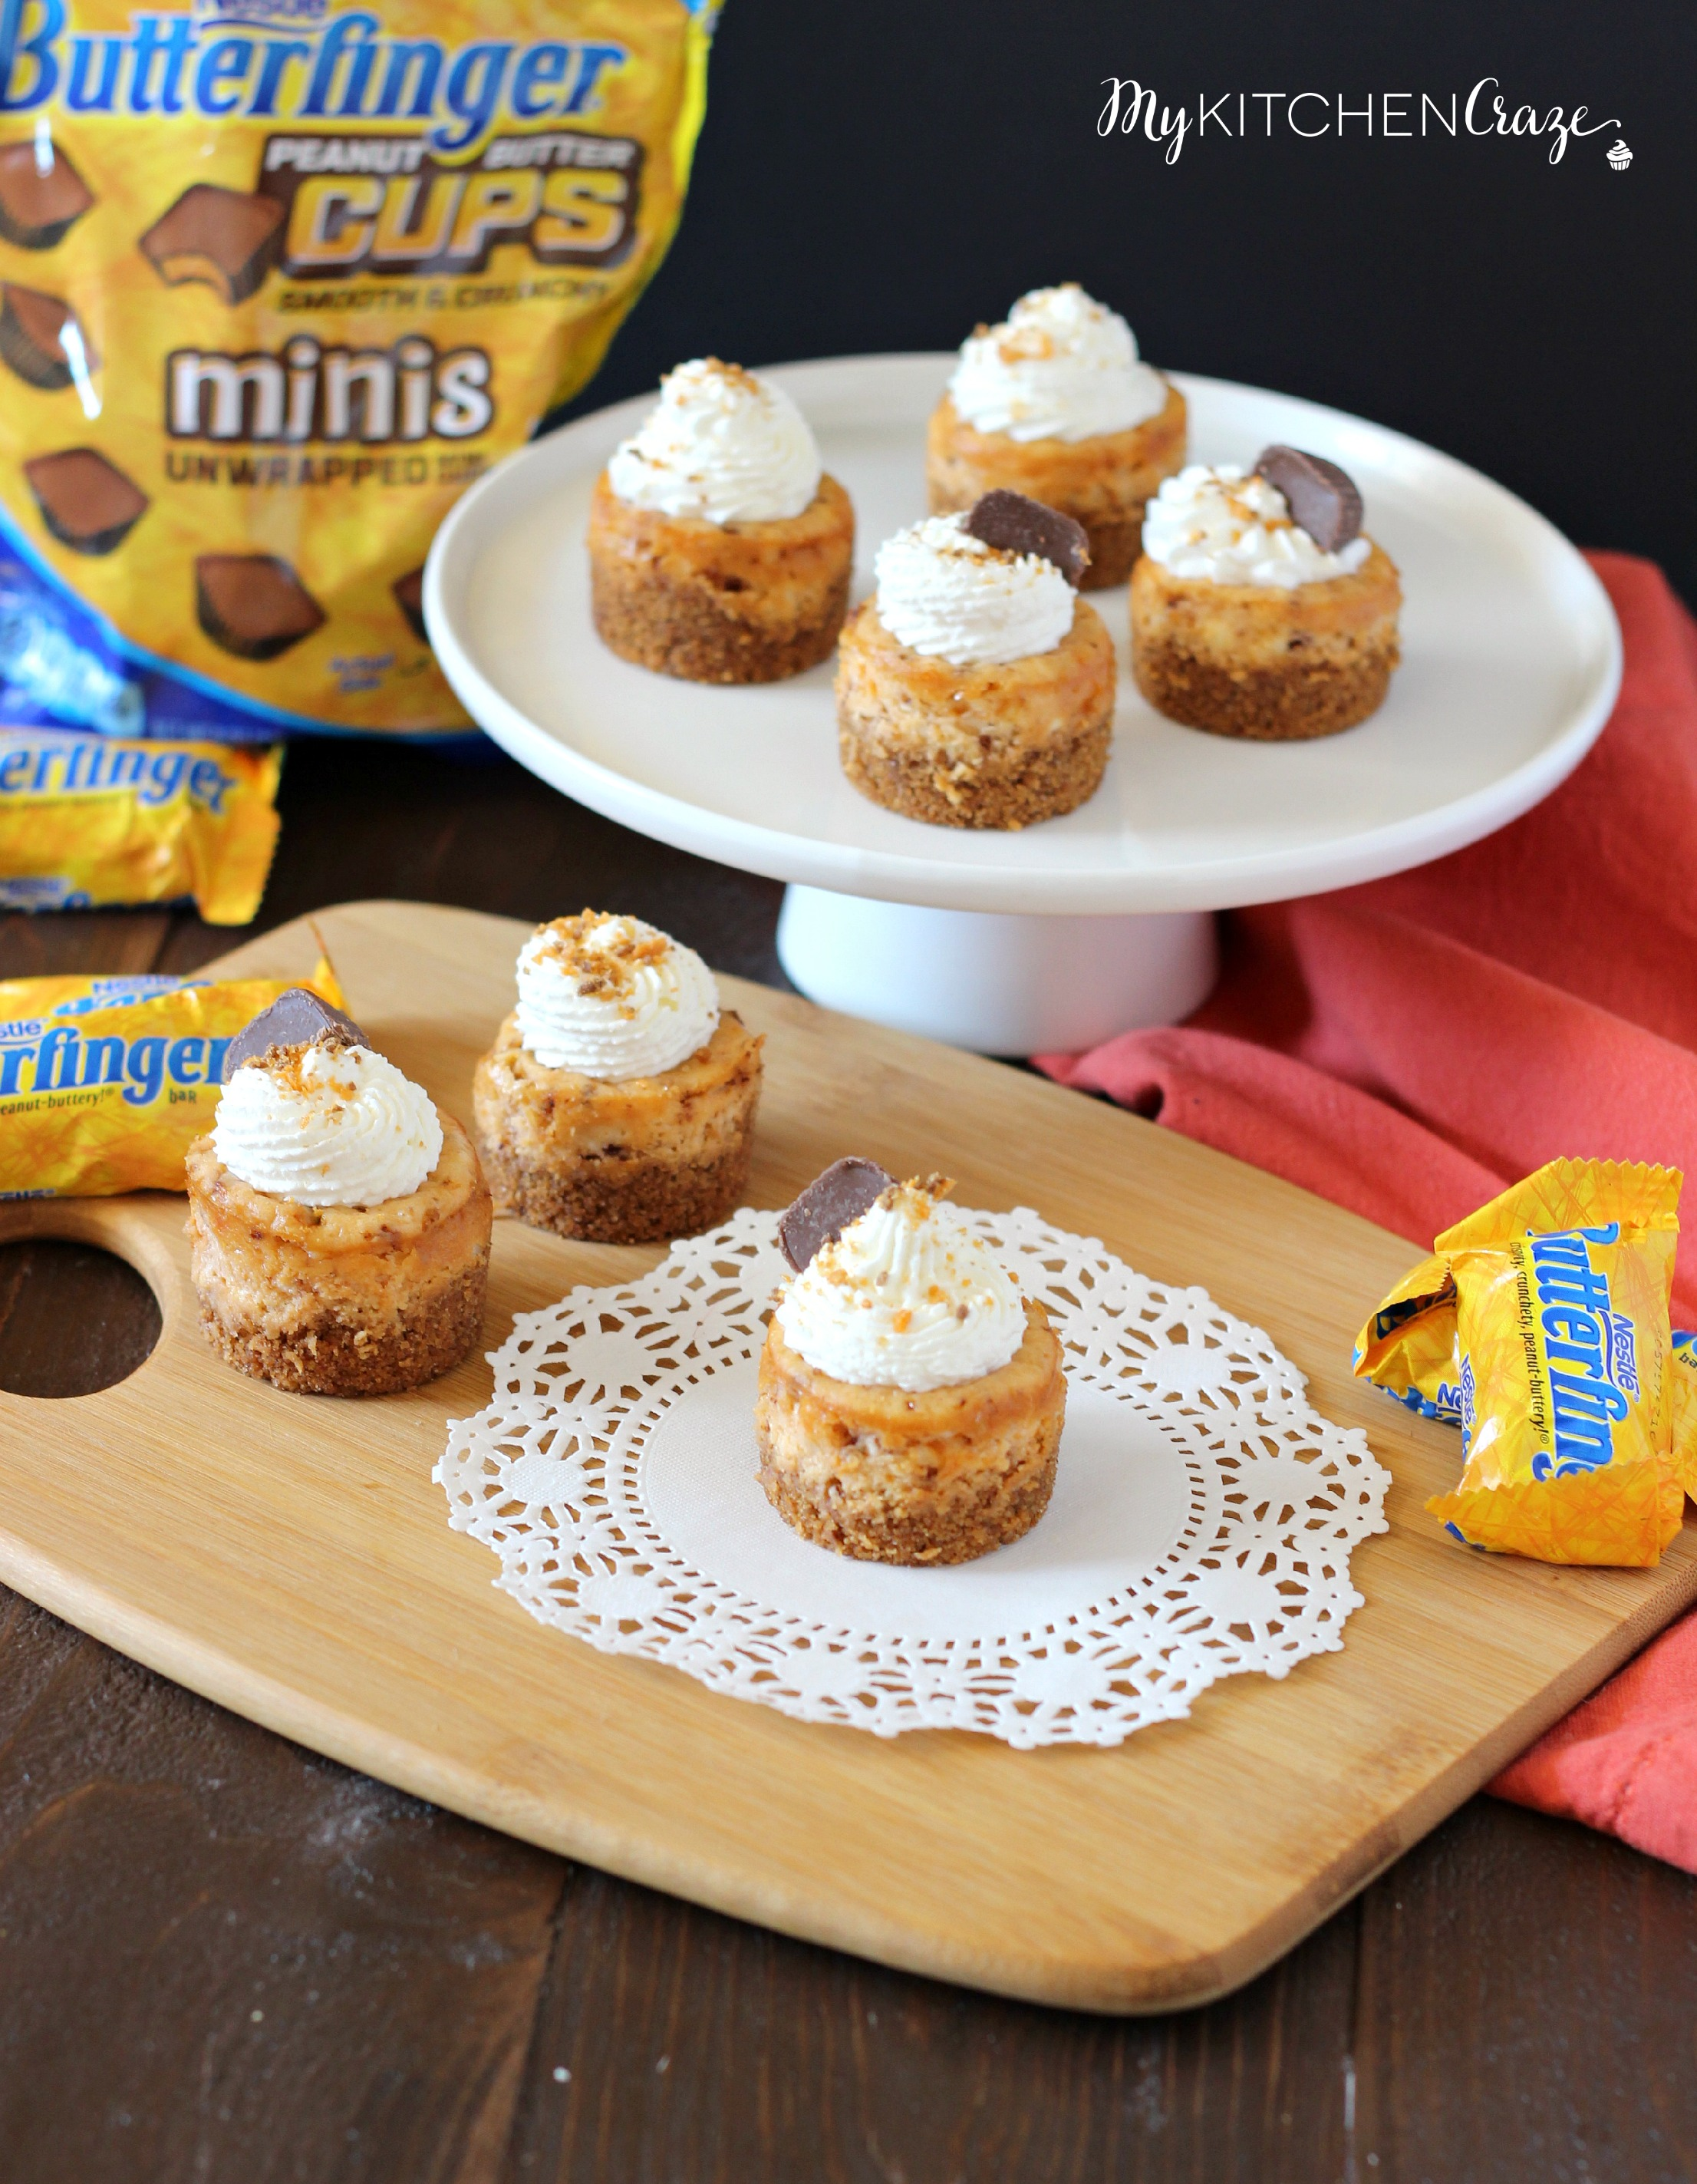 Mini Butterfinger Cheesecakes ~ mykitchencraze.com ~ Delicious cheesecakes swirled with butterfingers candies and topped with whipped cream! Yum!